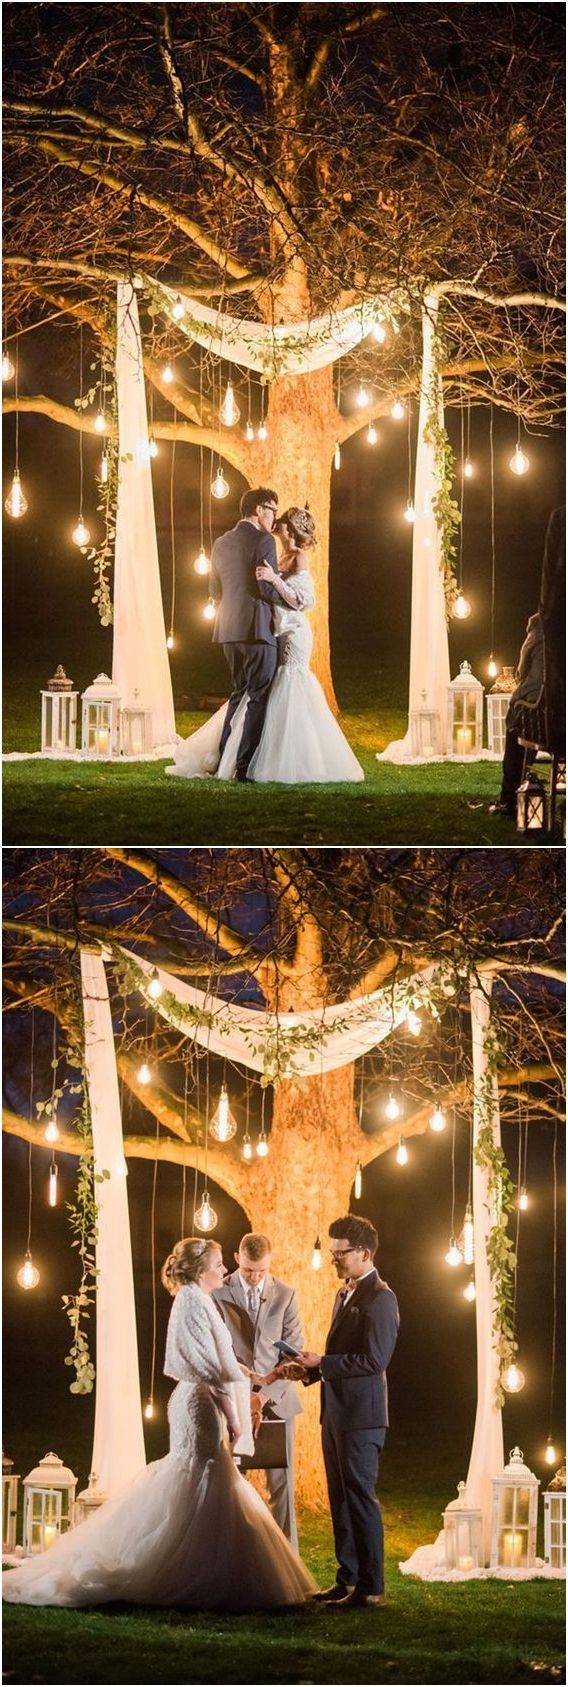 Top 20 Wedding Tree Backdrops and Arches